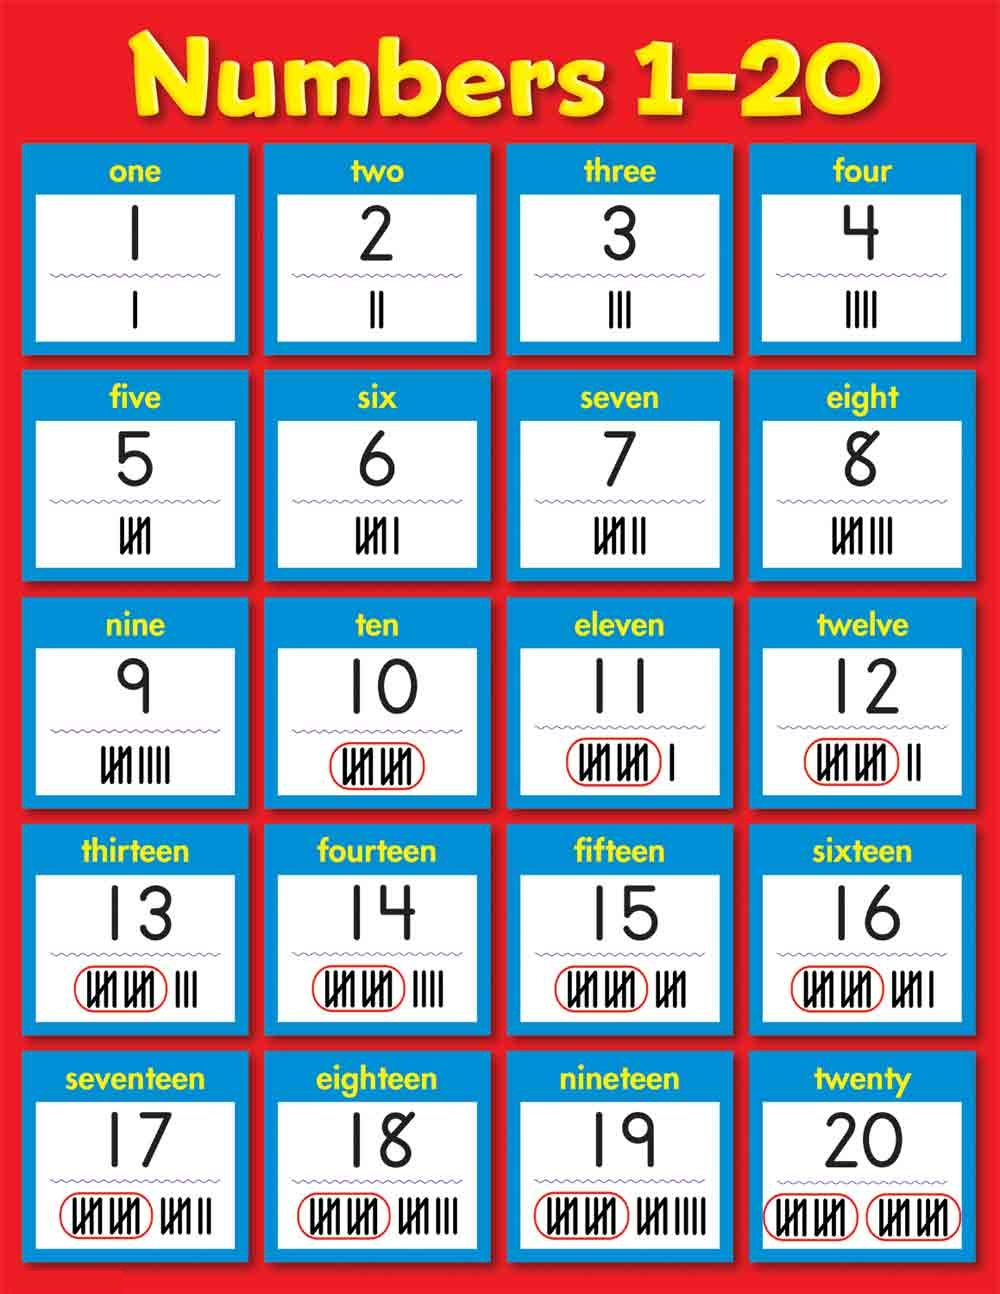 1-20 number chart page